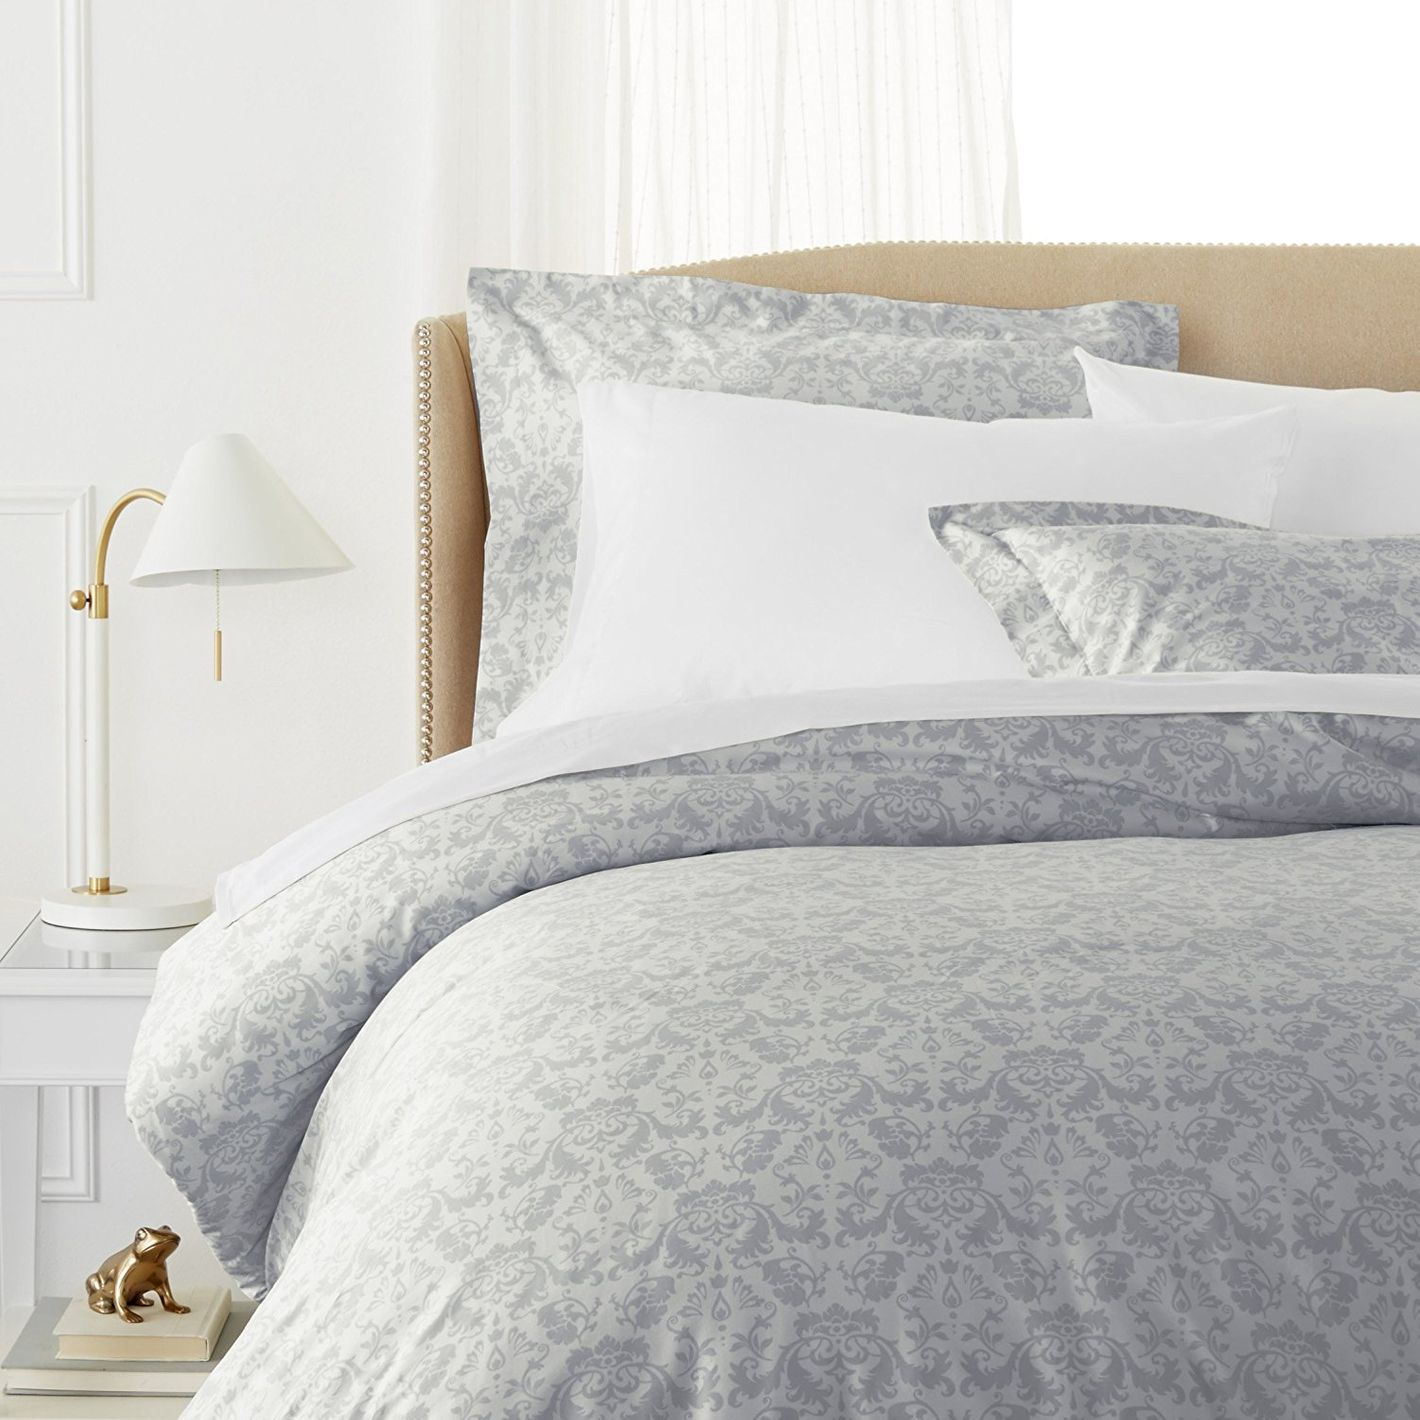 c covers grey pillowcases brushed set cover cotton next day delivery in duvet htm img bianca